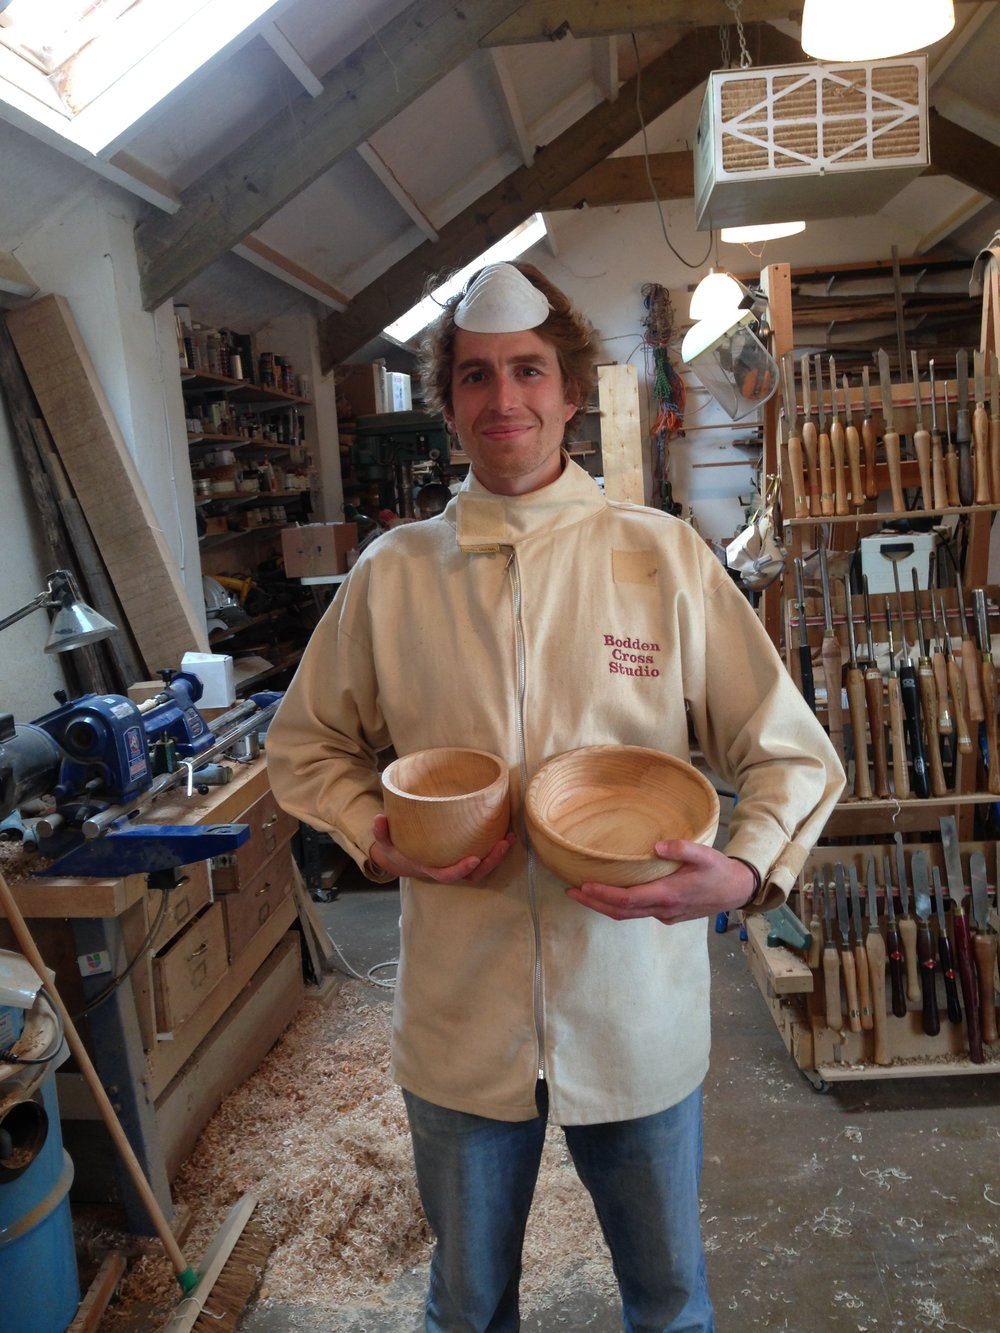 The dust mask is of course worn over the mouth when sanding - but doubles as a hat when posing for the portrait.